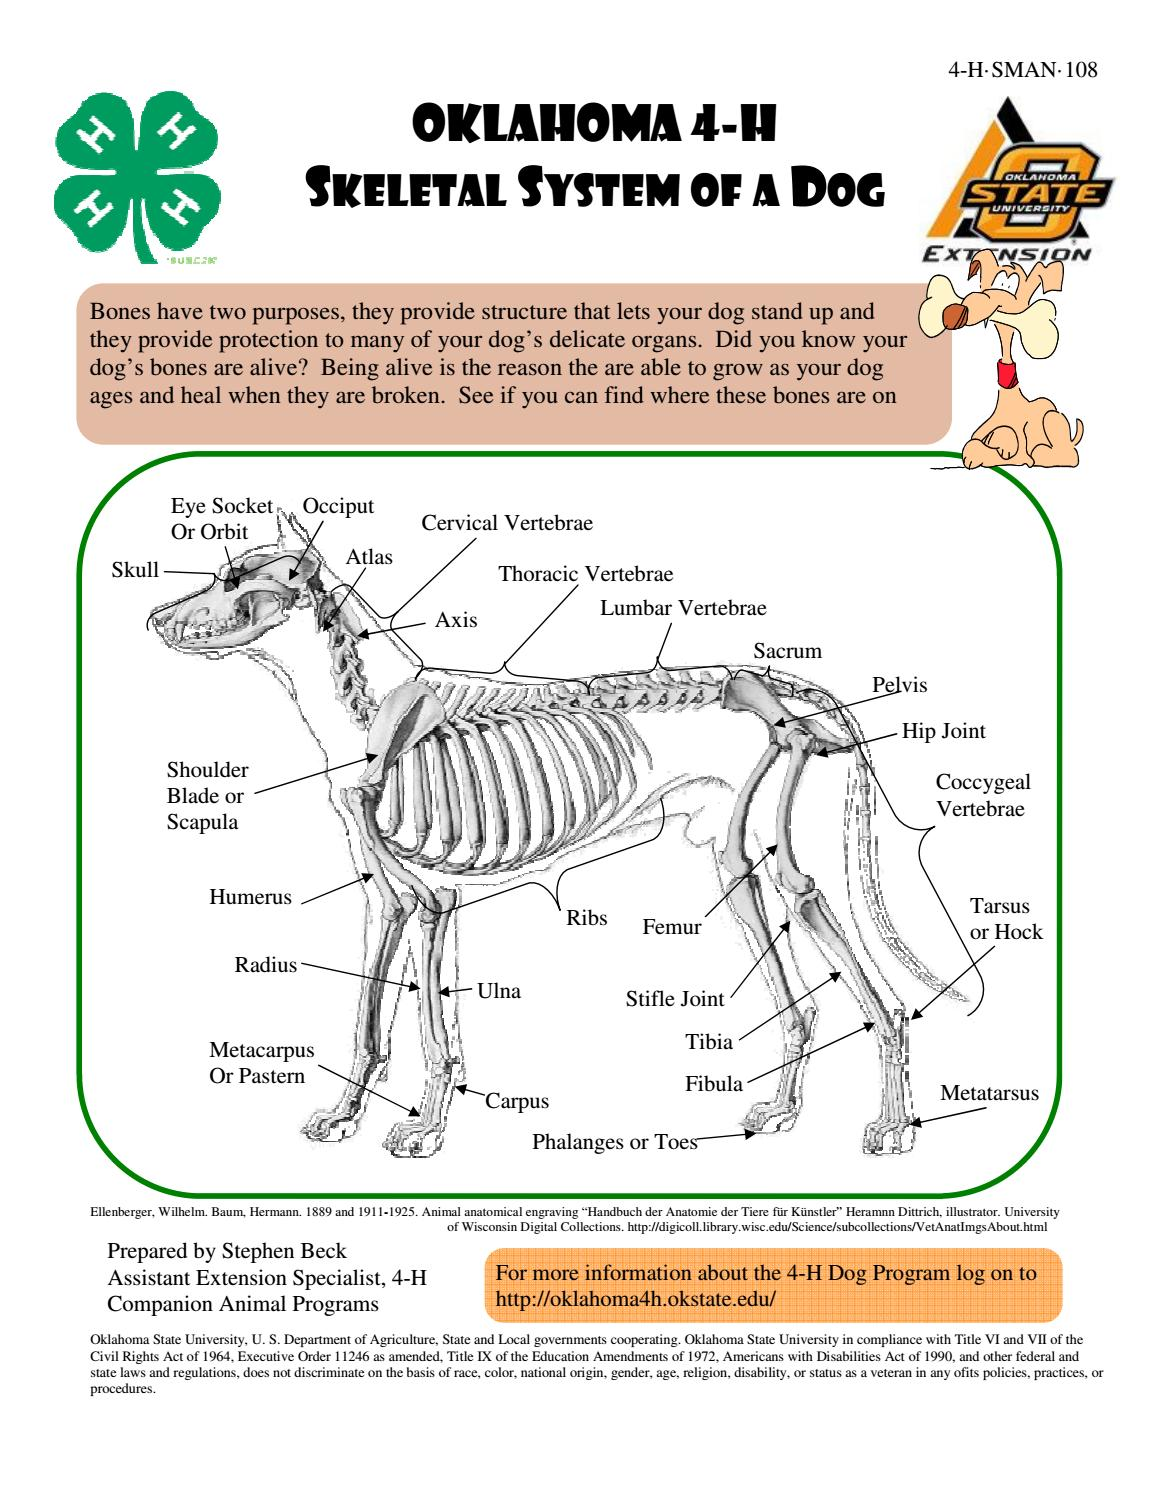 Perfect Dog Skeletal Structure Illustration - Anatomy and Physiology ...